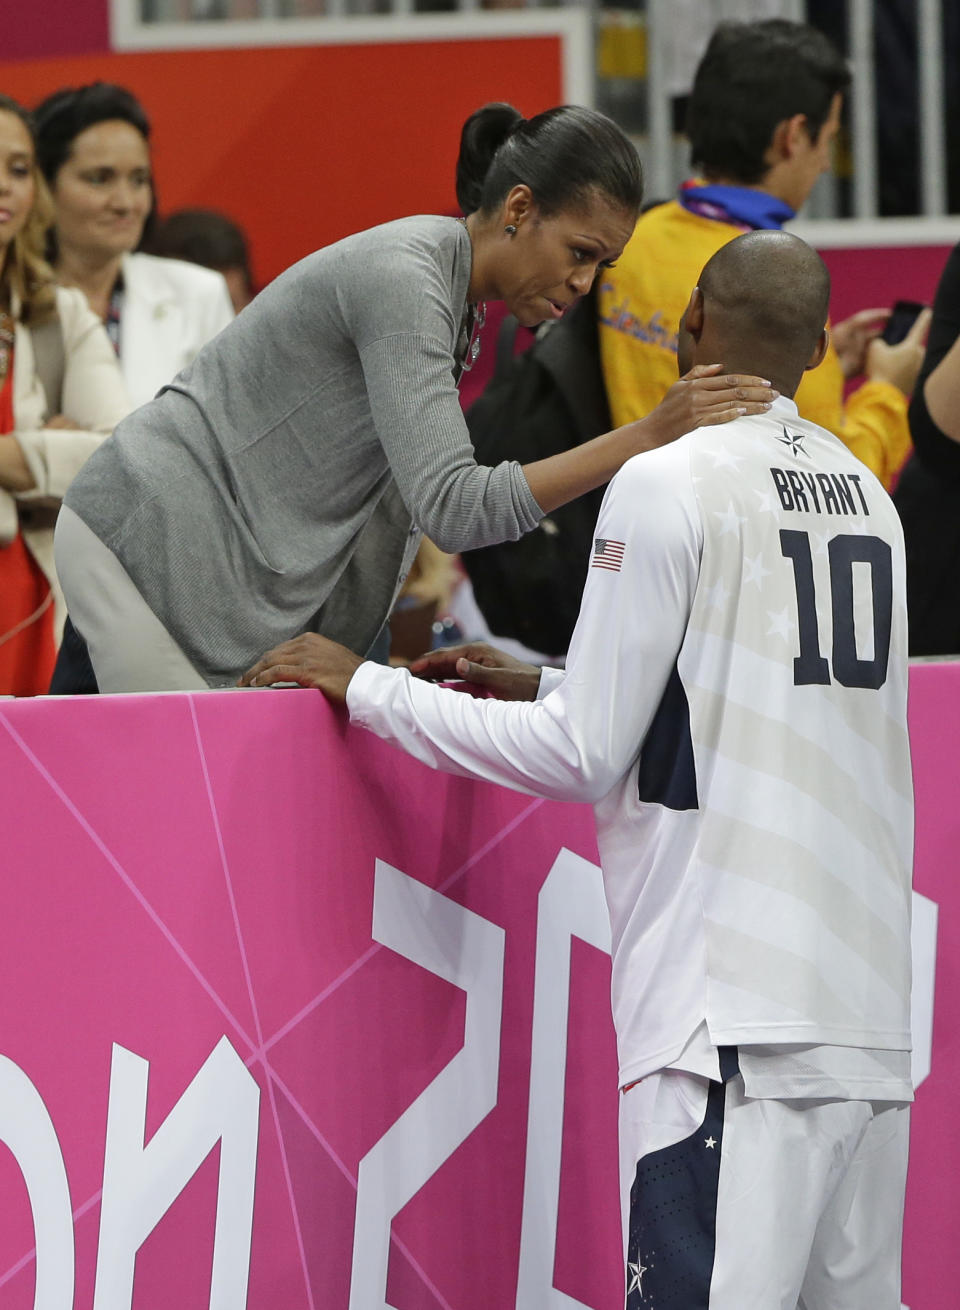 First Lady Michelle Obama talks with USA's Kobe Bryant after USA defeated France in a preliminary men's basketball game at the 2012 Summer Olympics, Sunday, July 29, 2012, in London. (AP Photo/Eric Gay)